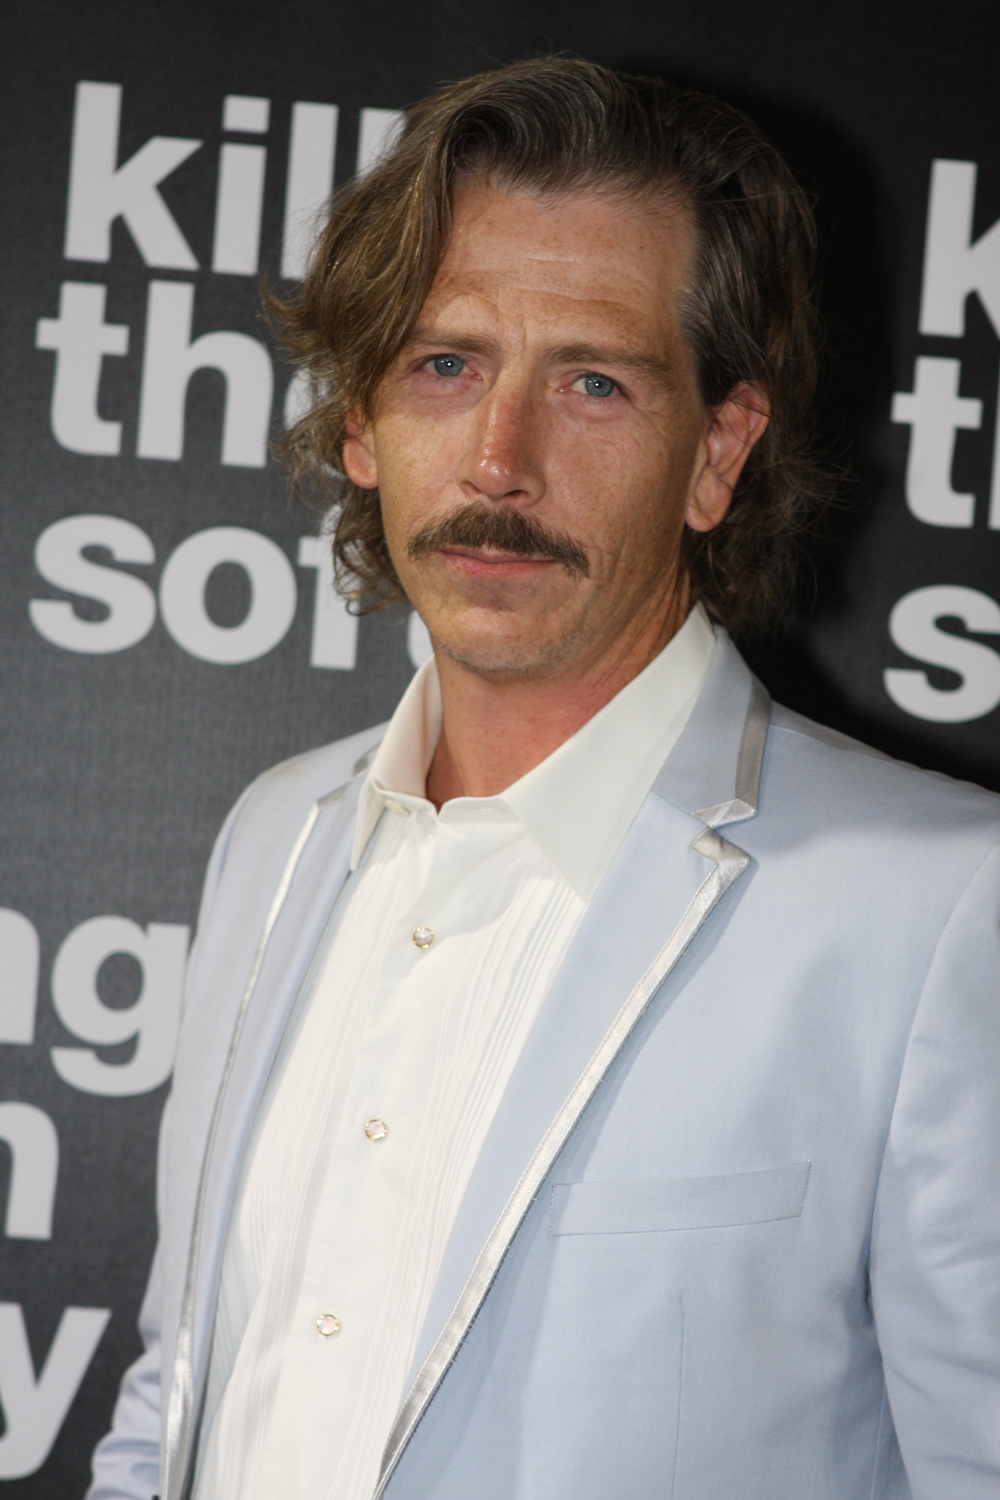 ben mendelsohn youngben mendelsohn young, ben mendelsohn tumblr, ben mendelsohn dark knight, ben mendelsohn instagram, ben mendelsohn mads mikkelsen, ben mendelsohn height, ben mendelsohn wife, ben mendelsohn emma forrest, ben mendelsohn daughter, ben mendelsohn dance, ben mendelsohn vk, ben mendelsohn hair color, ben mendelsohn knowing, ben mendelsohn show, ben mendelsohn esquire, ben mendelsohn teeth, ben mendelsohn reddit, ben mendelsohn dark knight rises, ben mendelsohn german, ben mendelsohn felicity jones